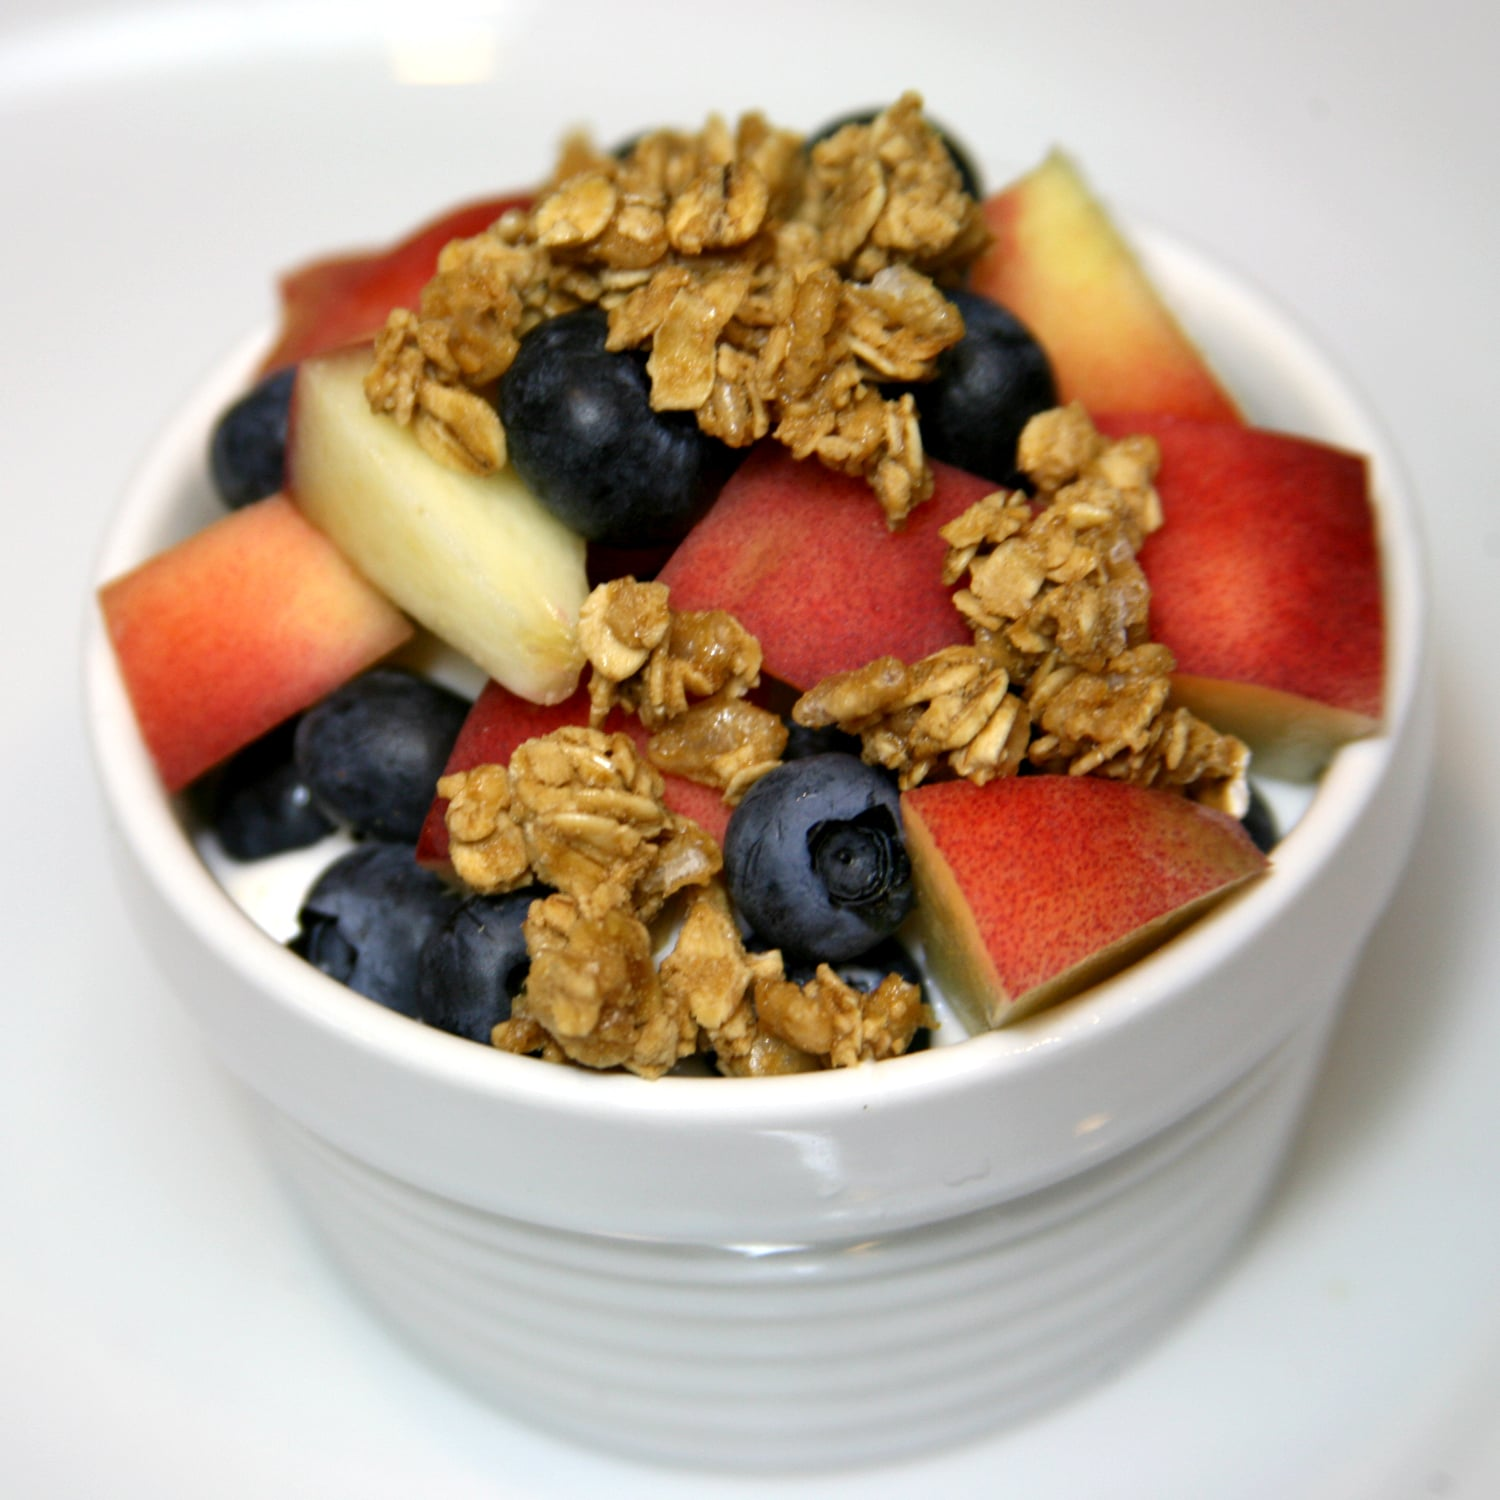 Blueberries and Peaches With Granola